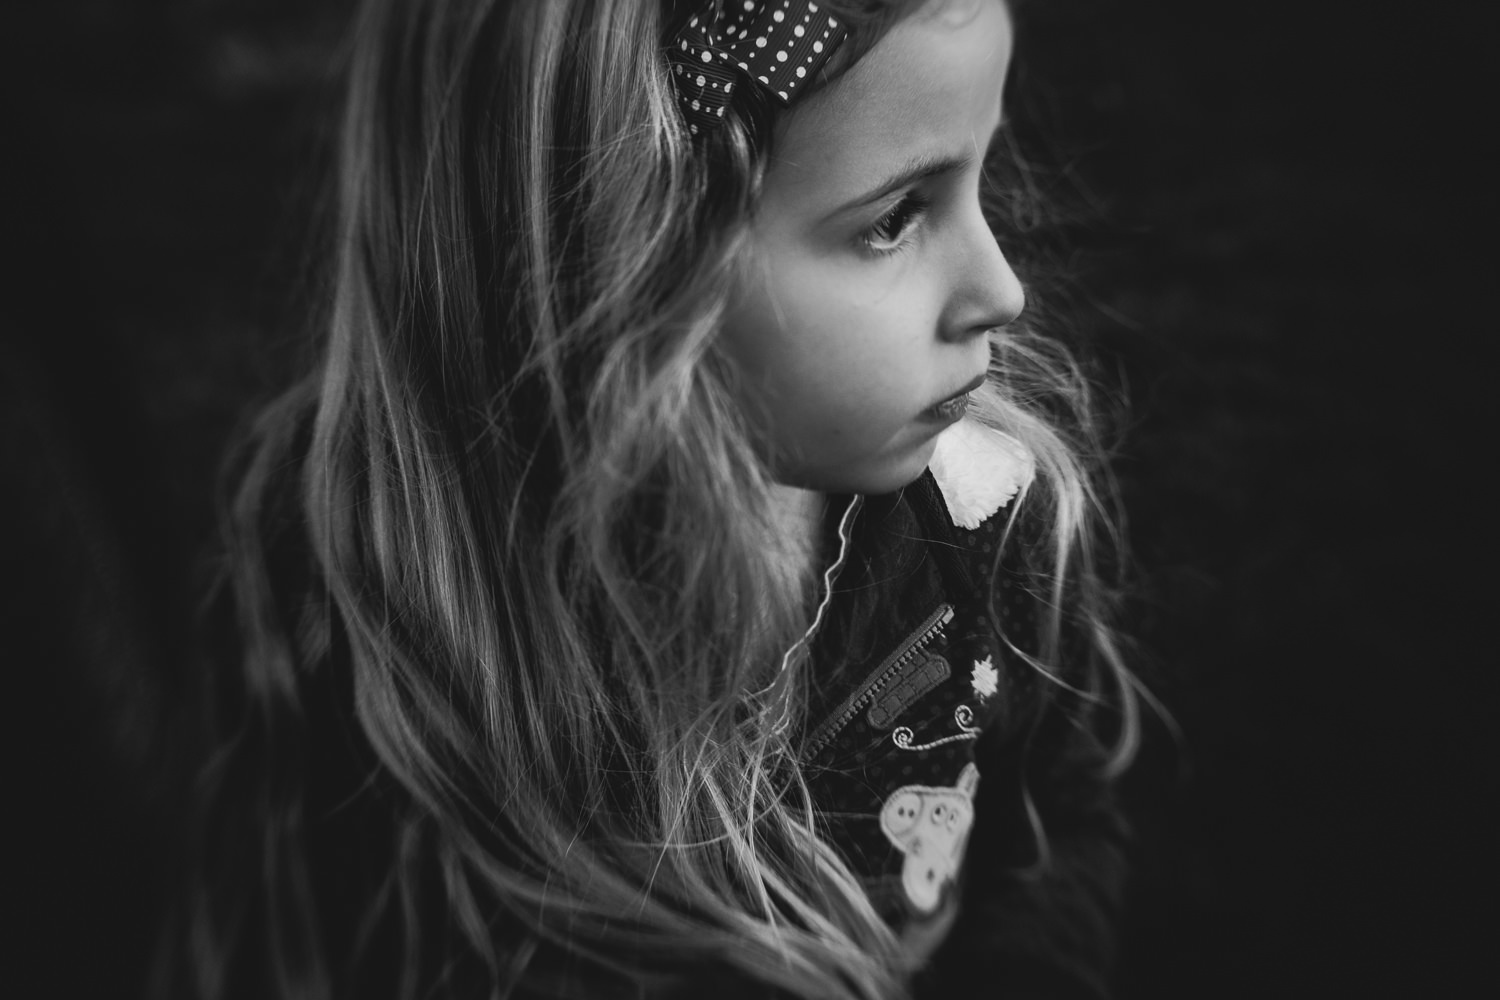 Portrait of a little girl in black and white